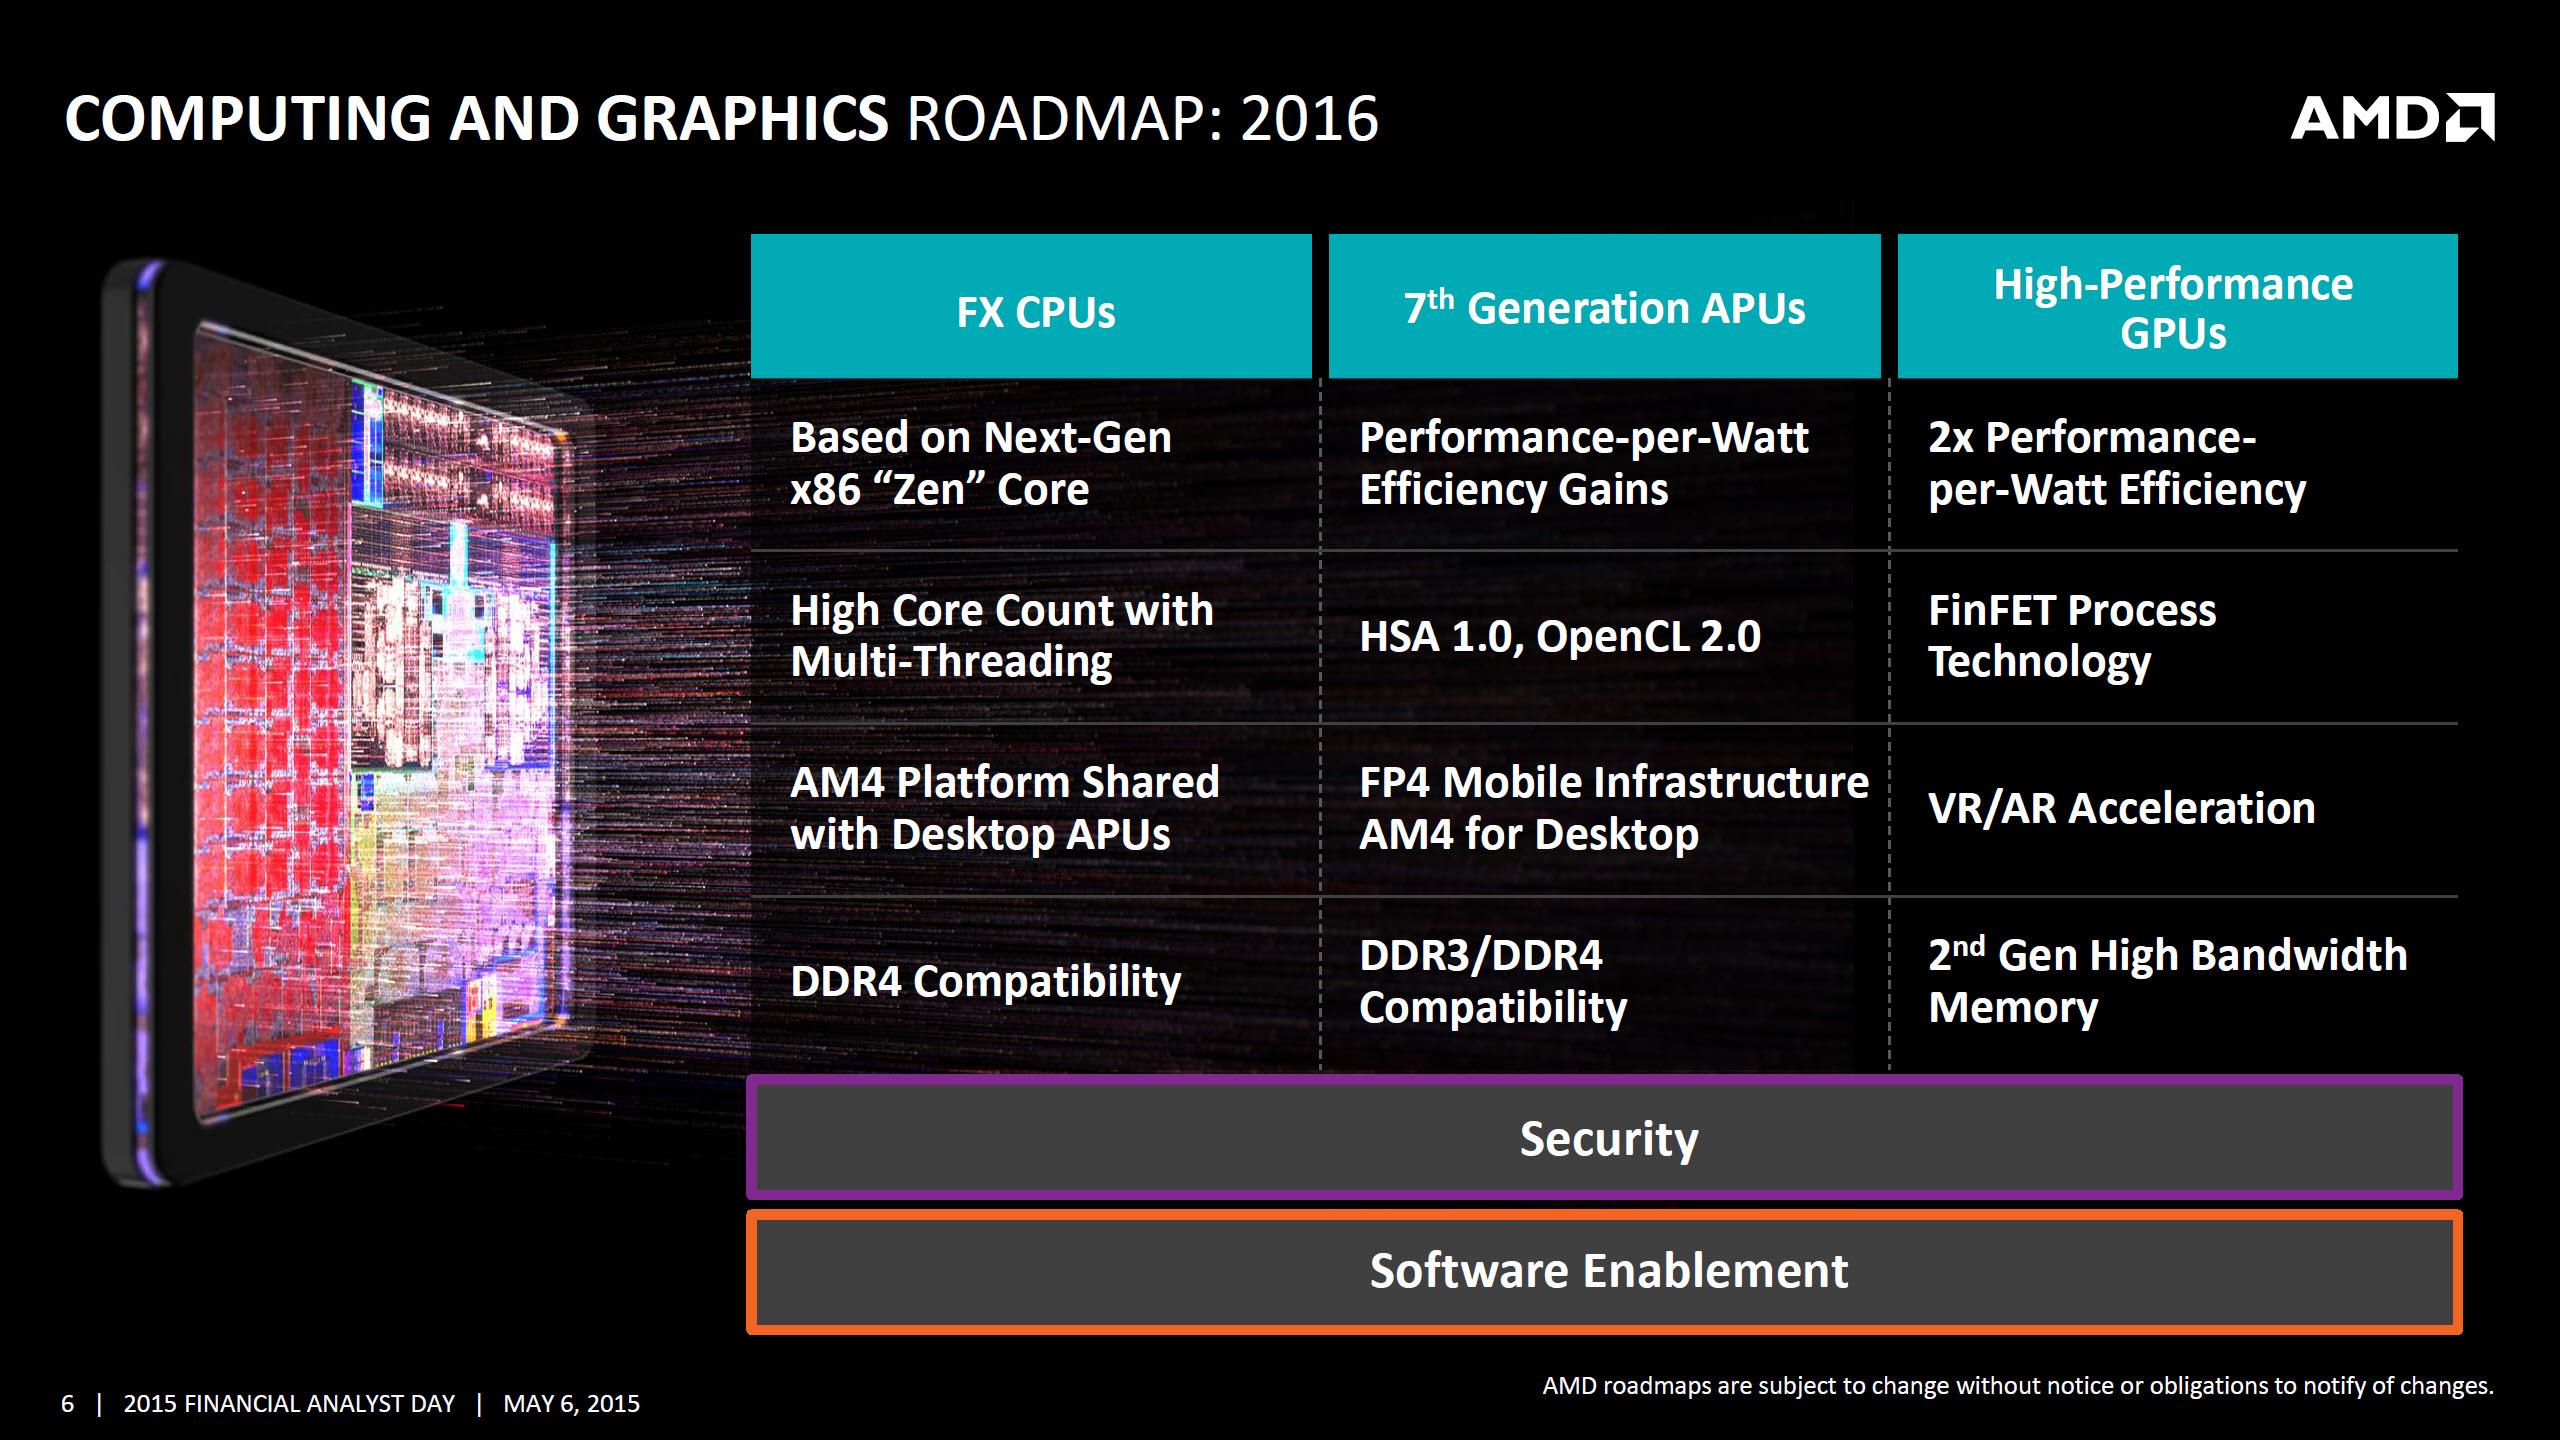 AMD promises two brand new GCN GPUs in 2016